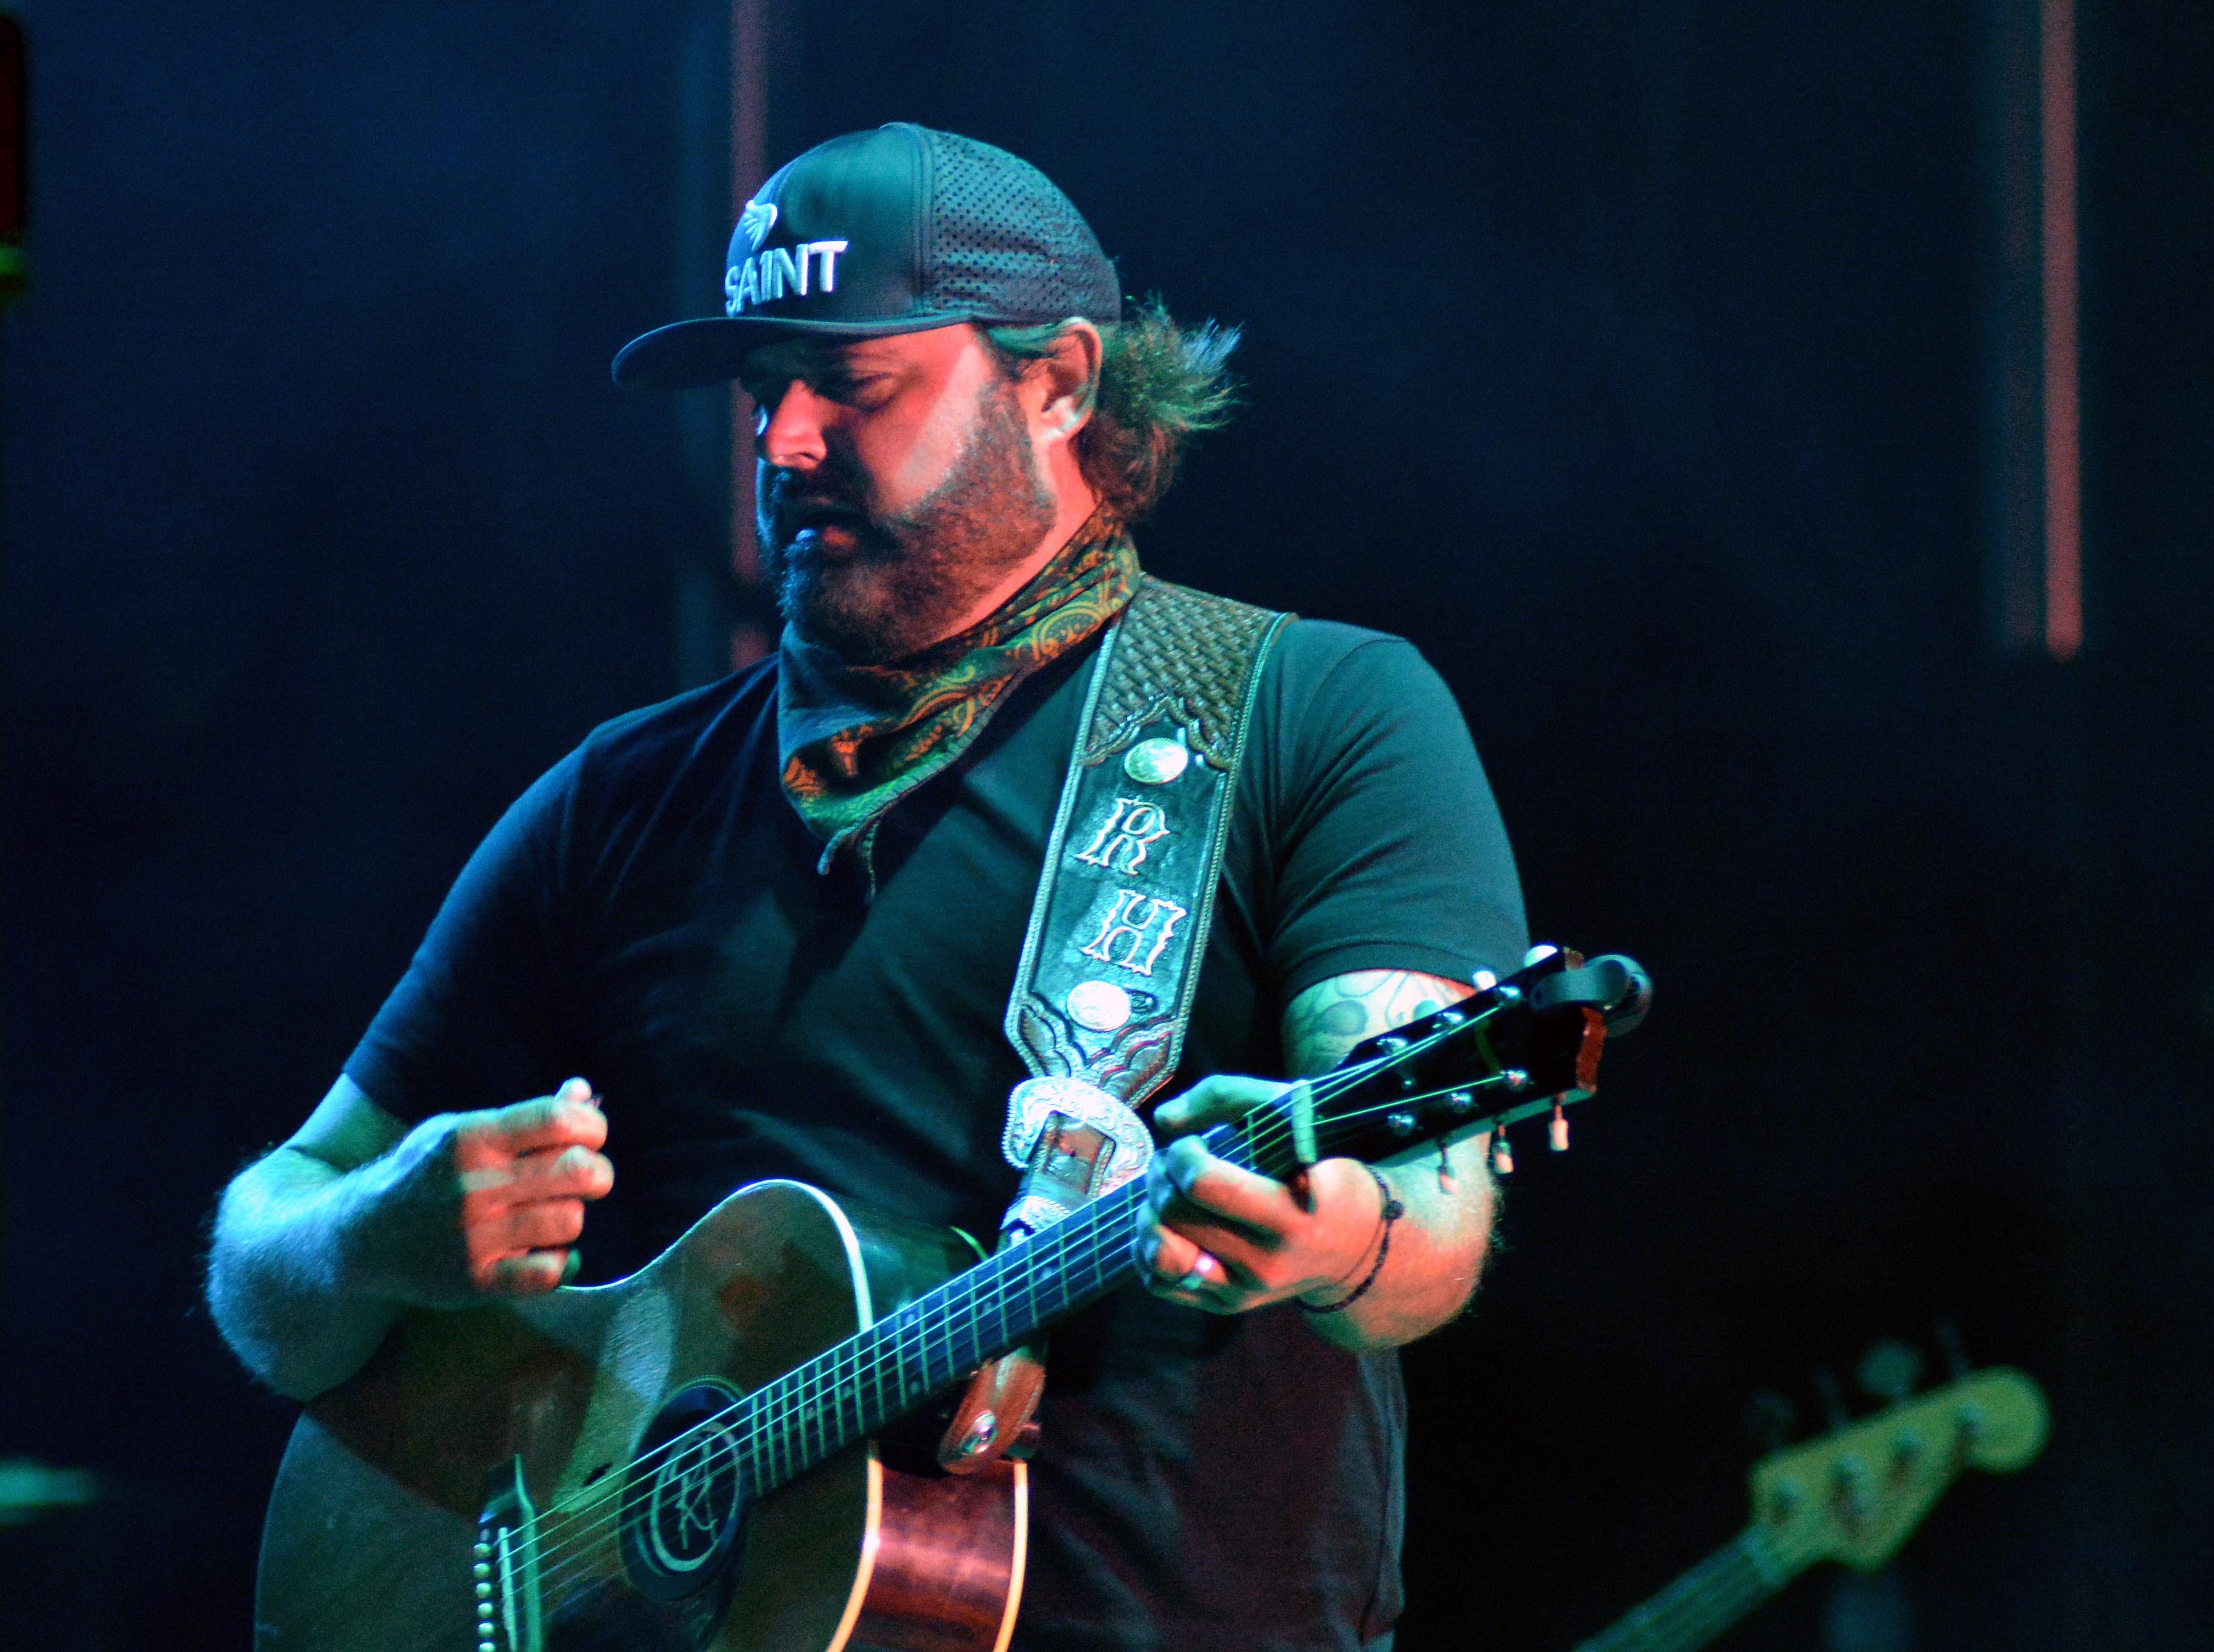 Headliner Randy Houser on the Main Stage at the Las Cruces Country Music Festival on Saturday, Oct. 20, 2018.